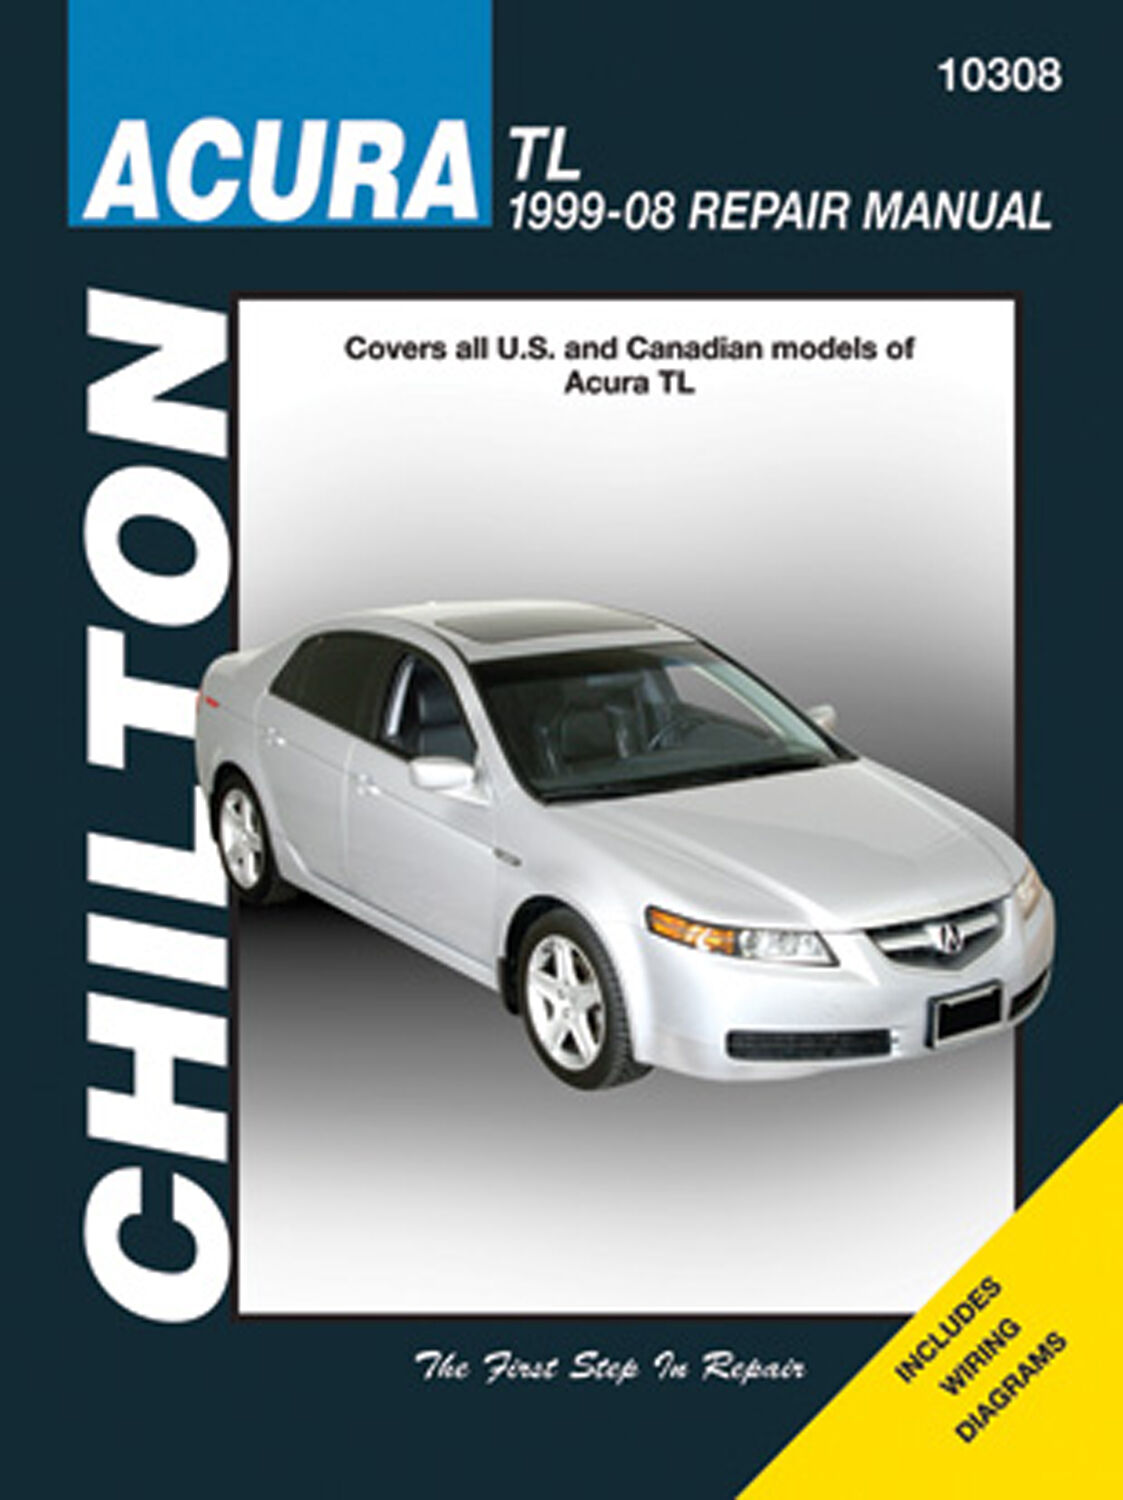 Repair Manual Chilton 10308 Fits 99 08 Acura Tl Ebay Wiring Diagram Stock Photo